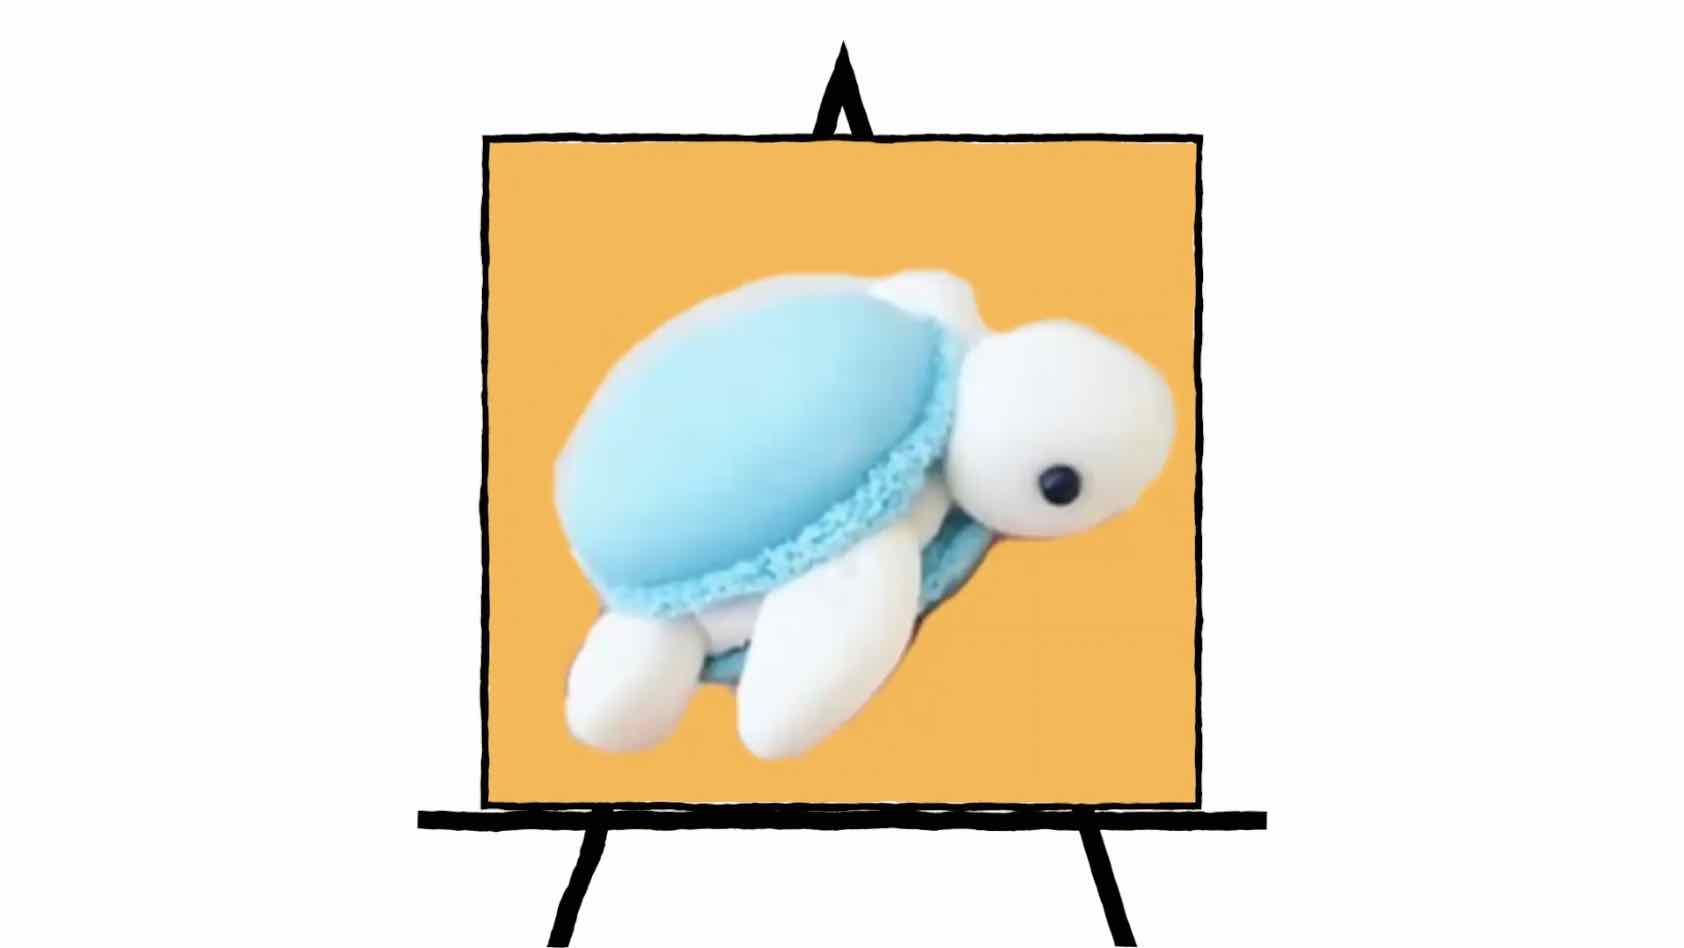 3d image of macaroon dessert in shape of a turtle with blue shells on orange background